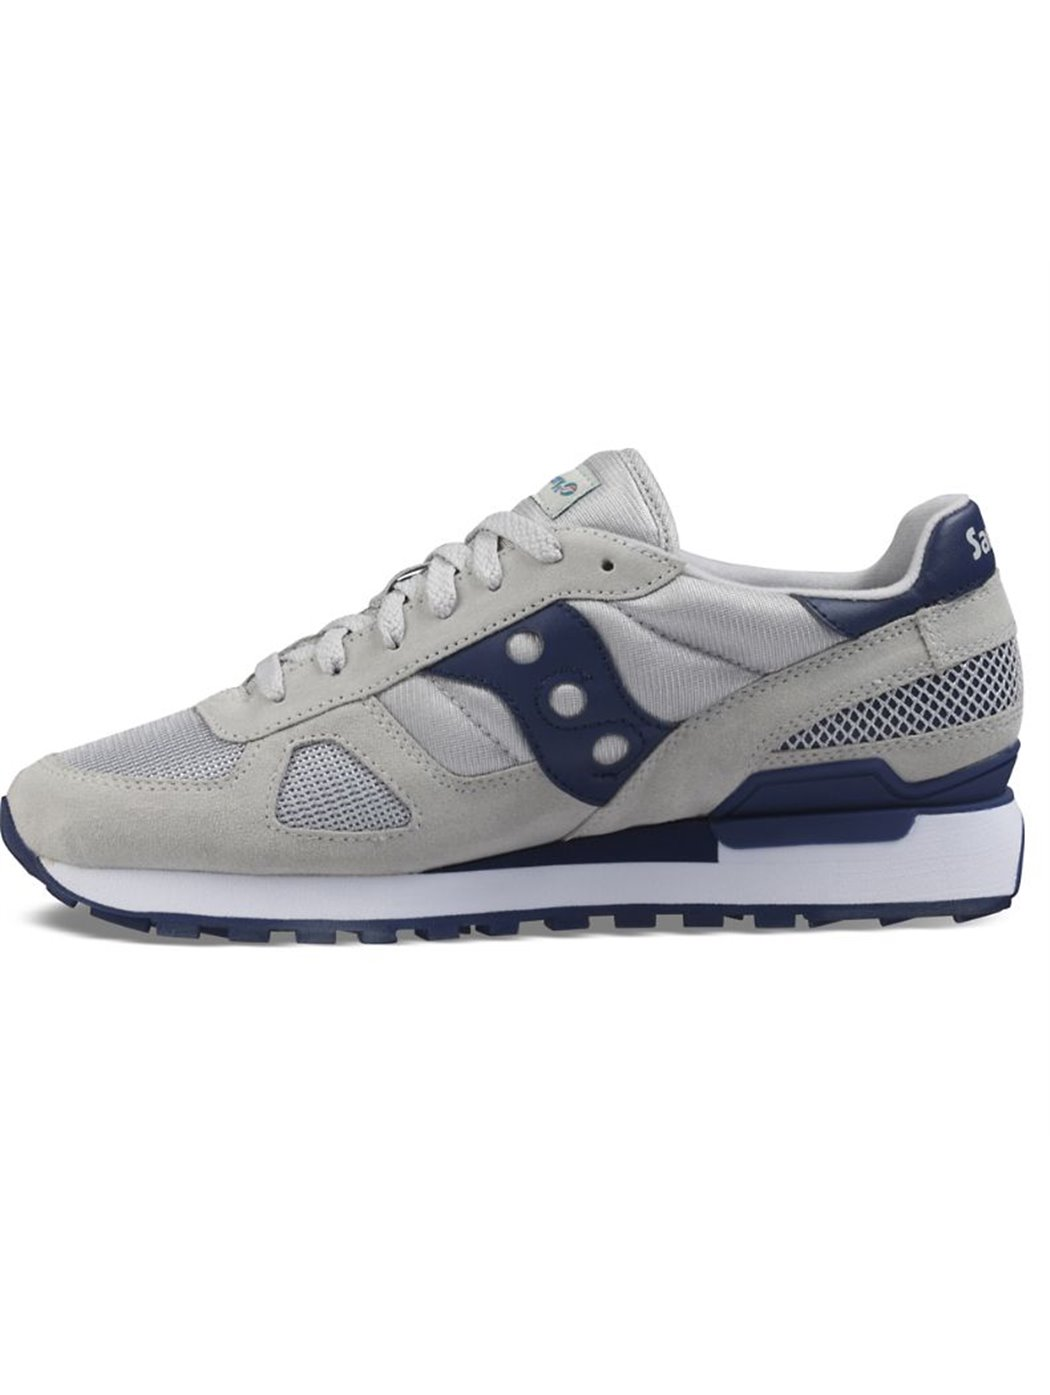 SAUCONY 2108-640 GREY-NAVY SNEAKERS